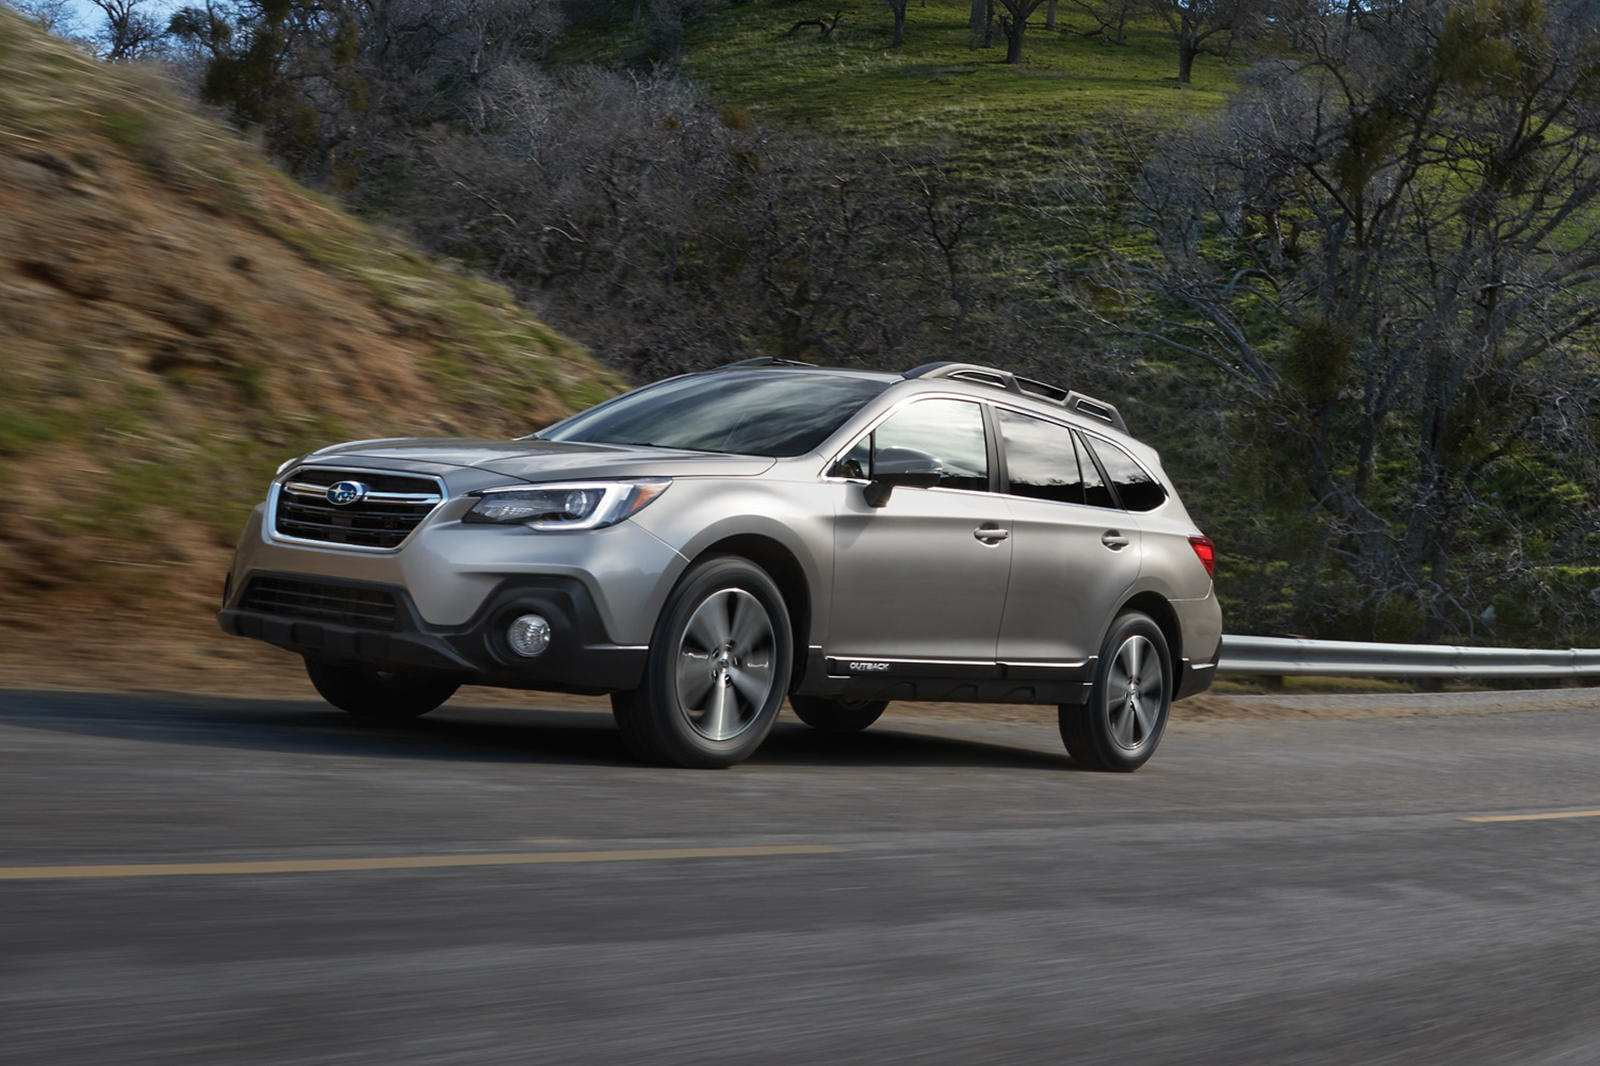 15 New Subaru Outback 2020 Model Redesign And Review